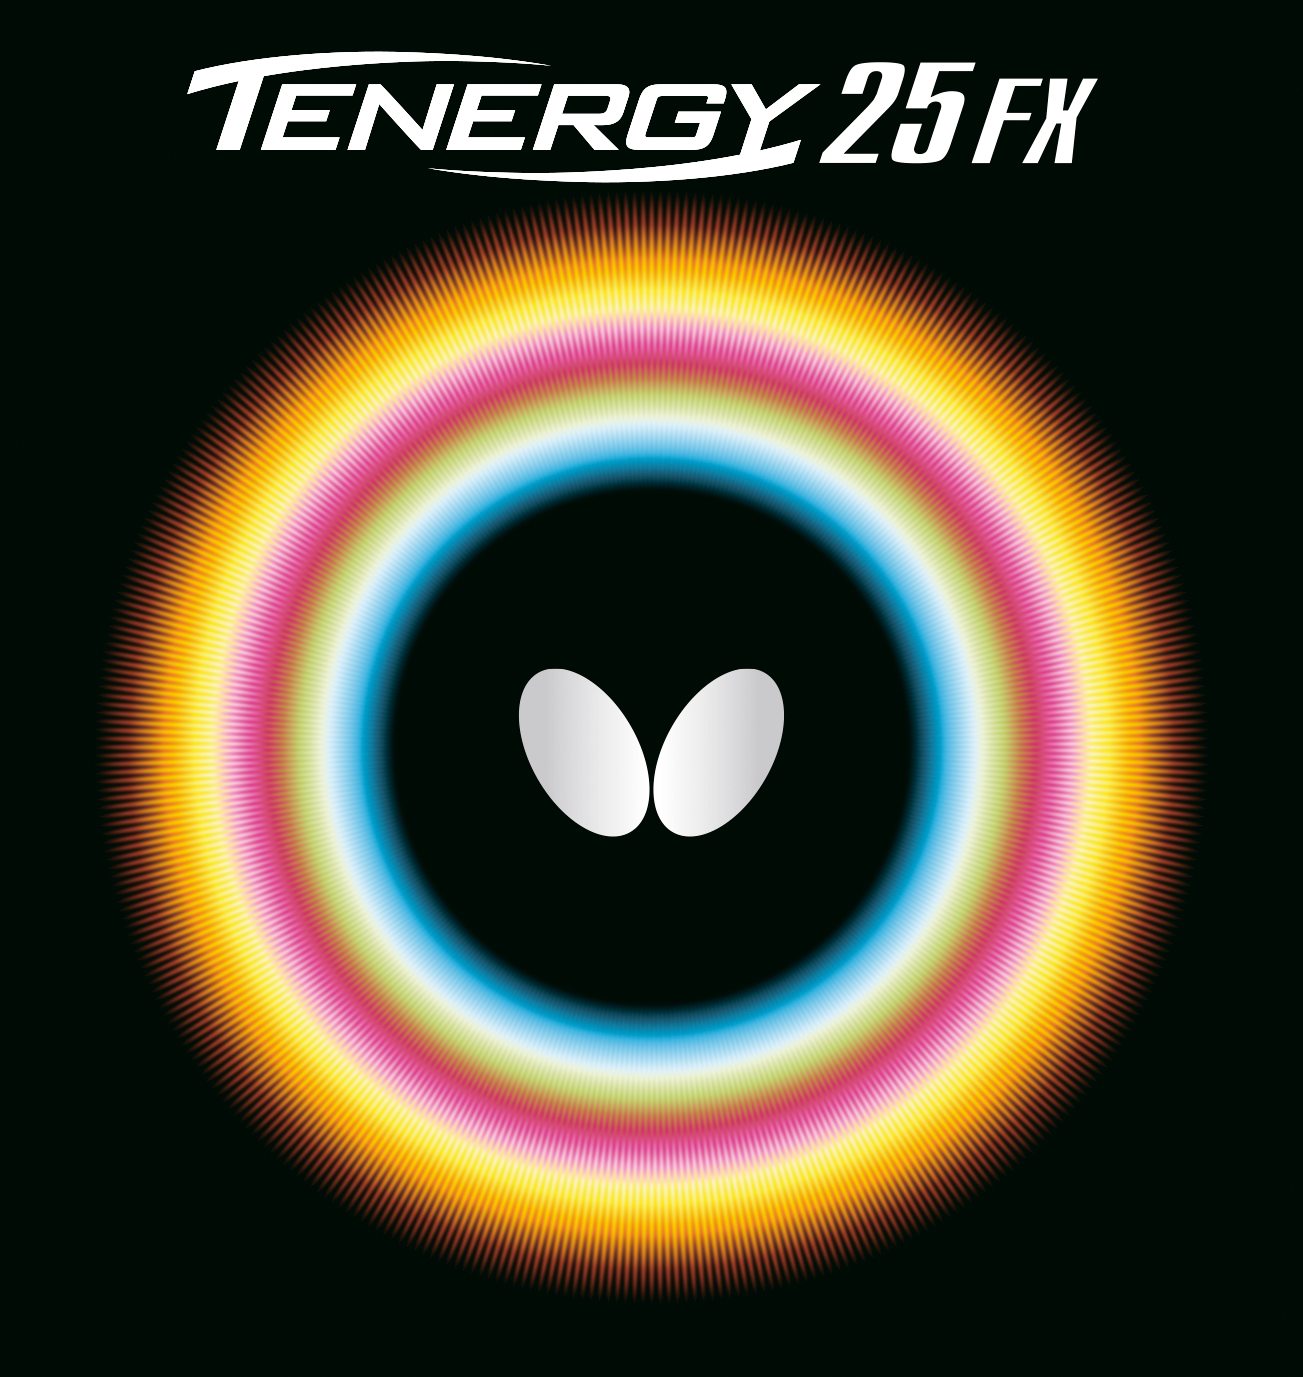 BUTTERFLY - potah TENERGY 25 FX